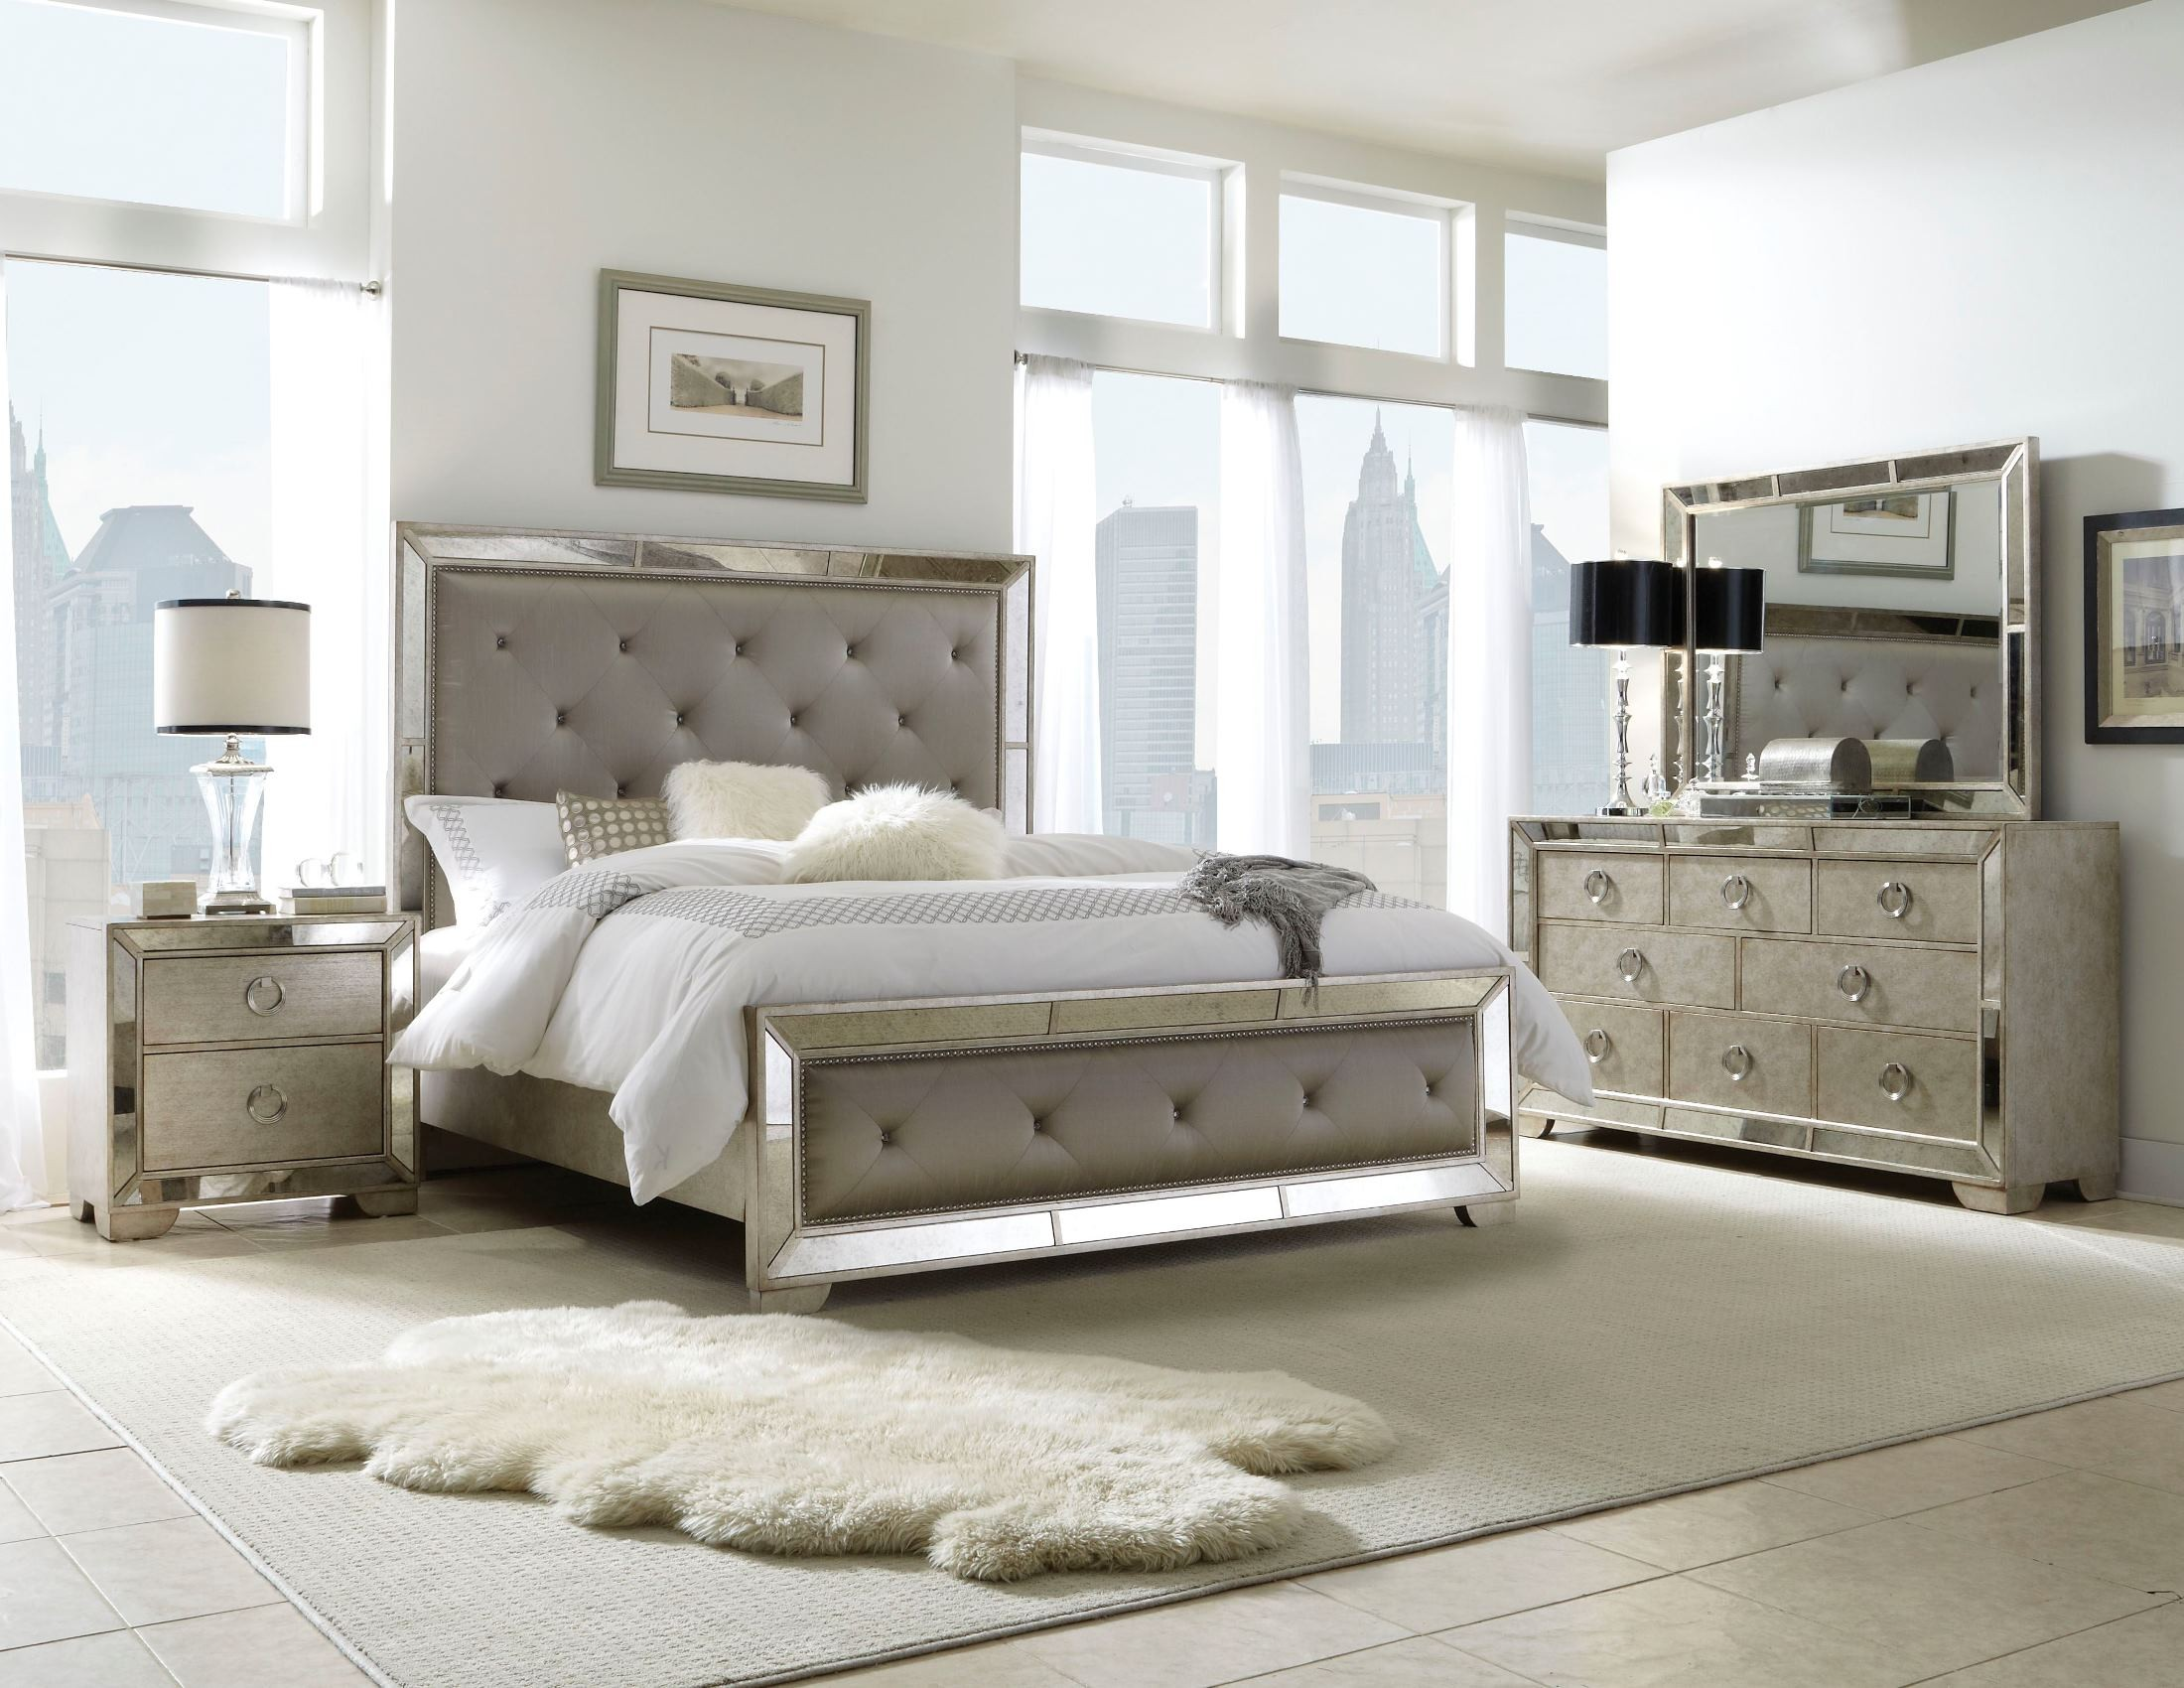 Farrah Platform Bedroom Set435575